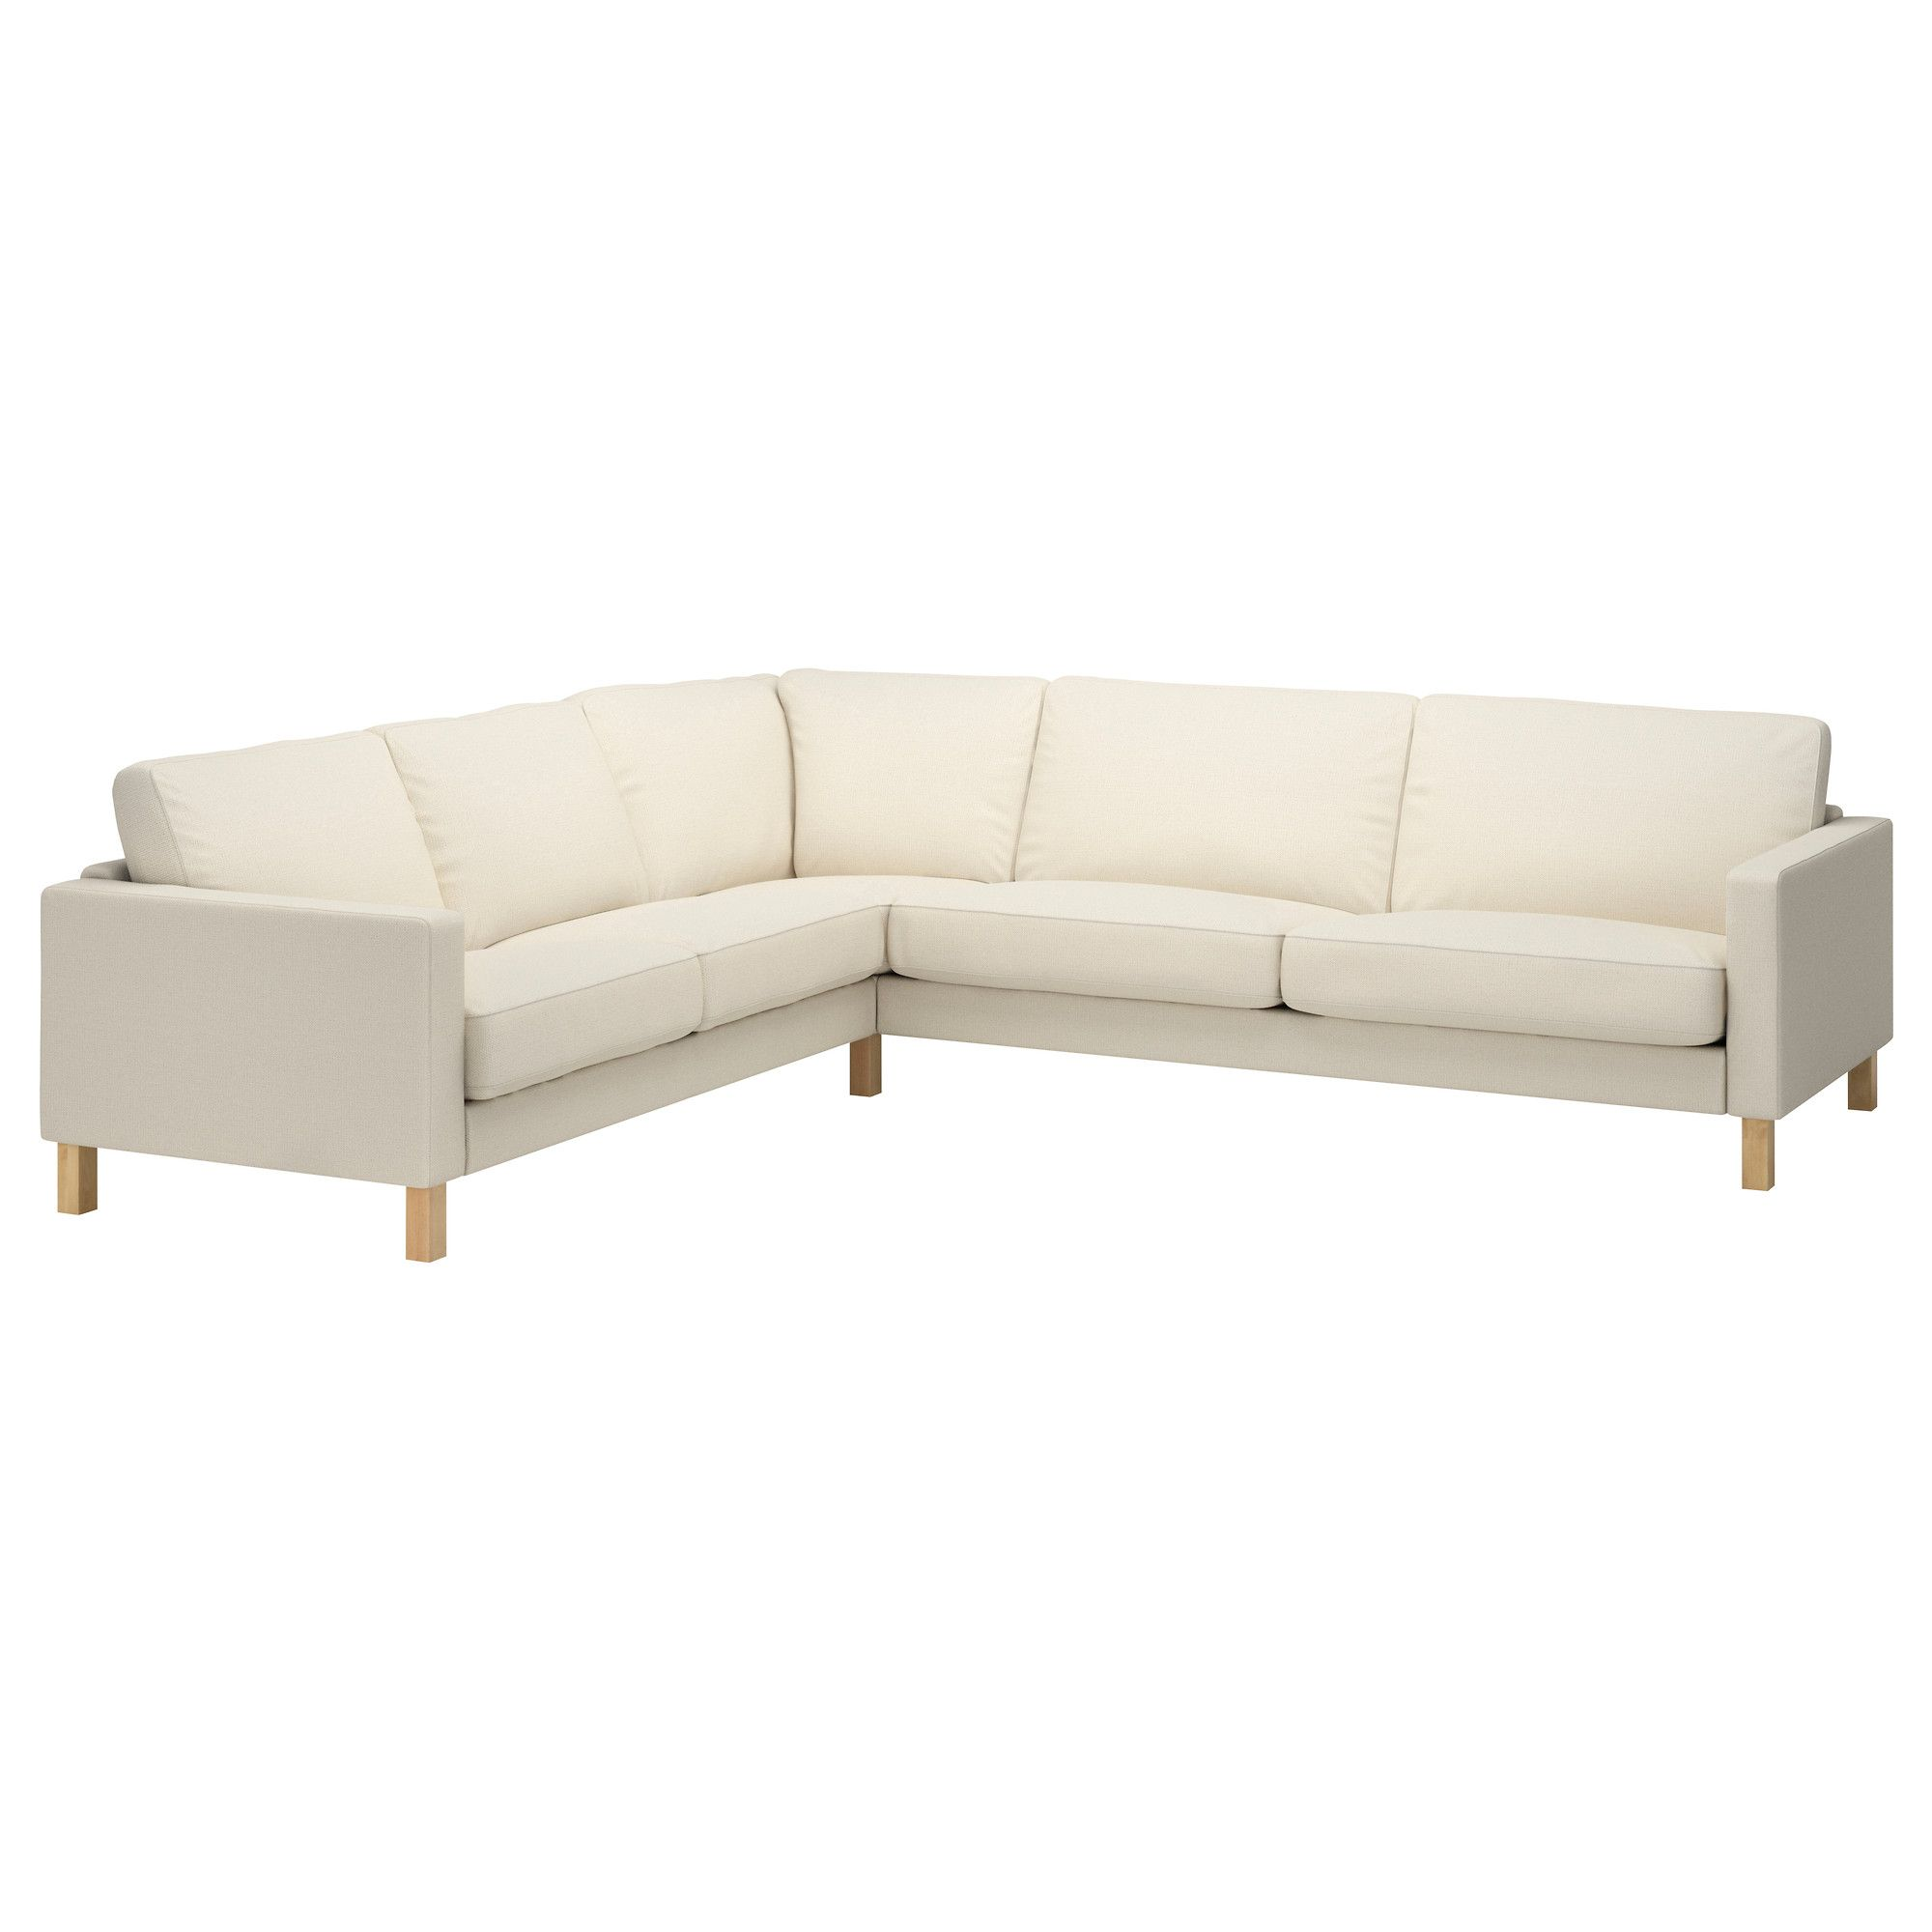 Shop For Furniture Home Accessories More Ikea Corner Sofa Corner Sofa Furniture